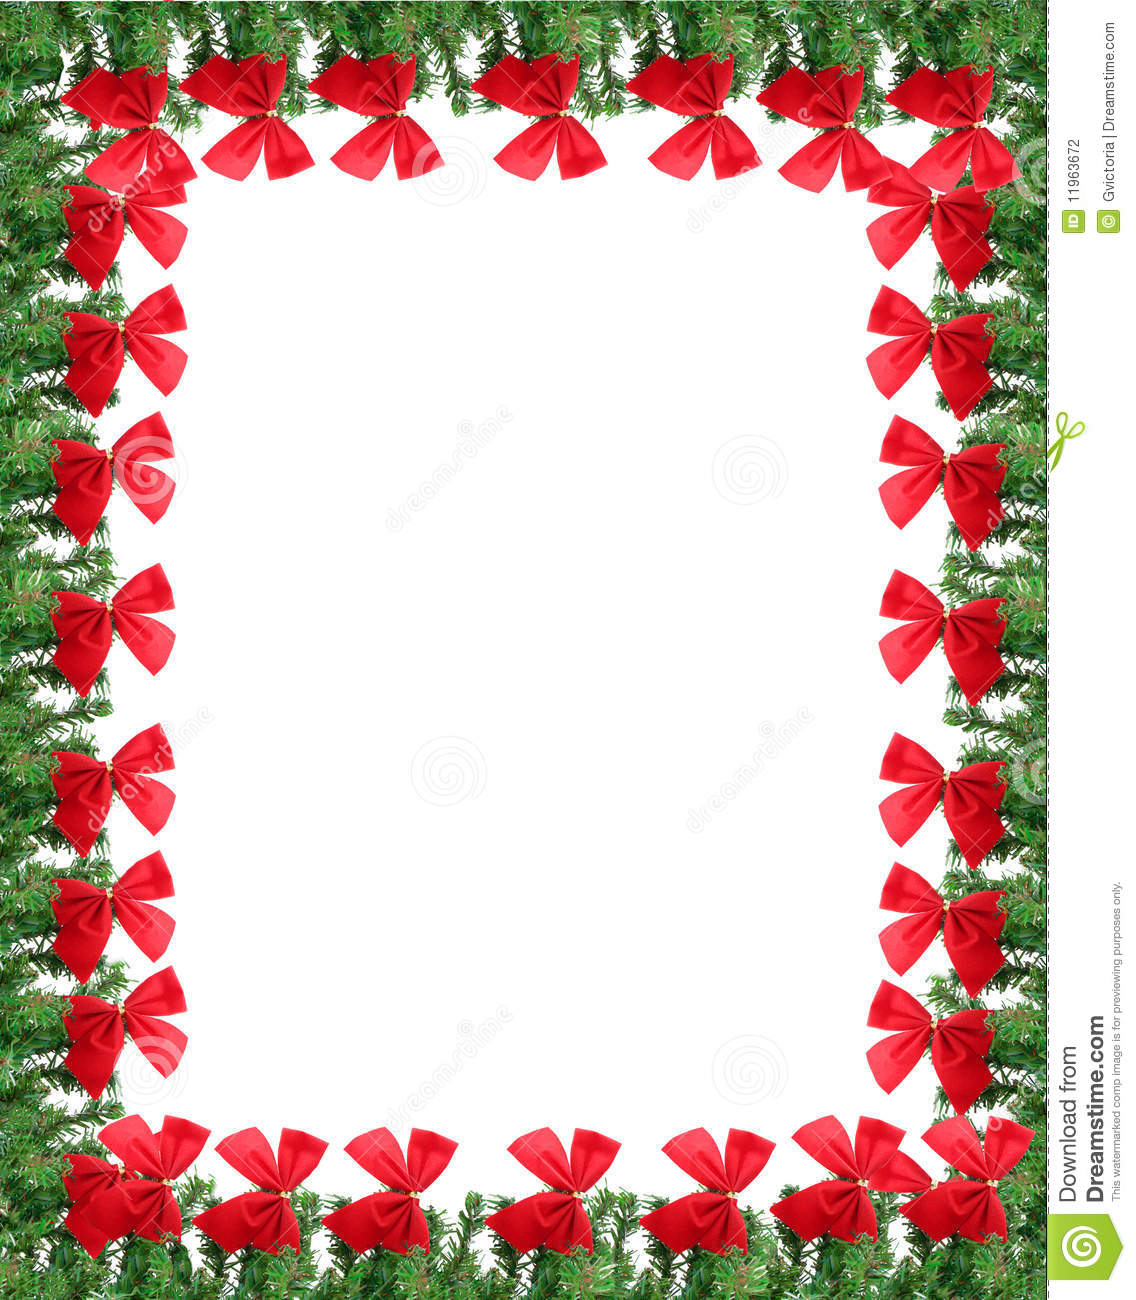 download christmas greeting card border stock photo image of bows festive 11963672